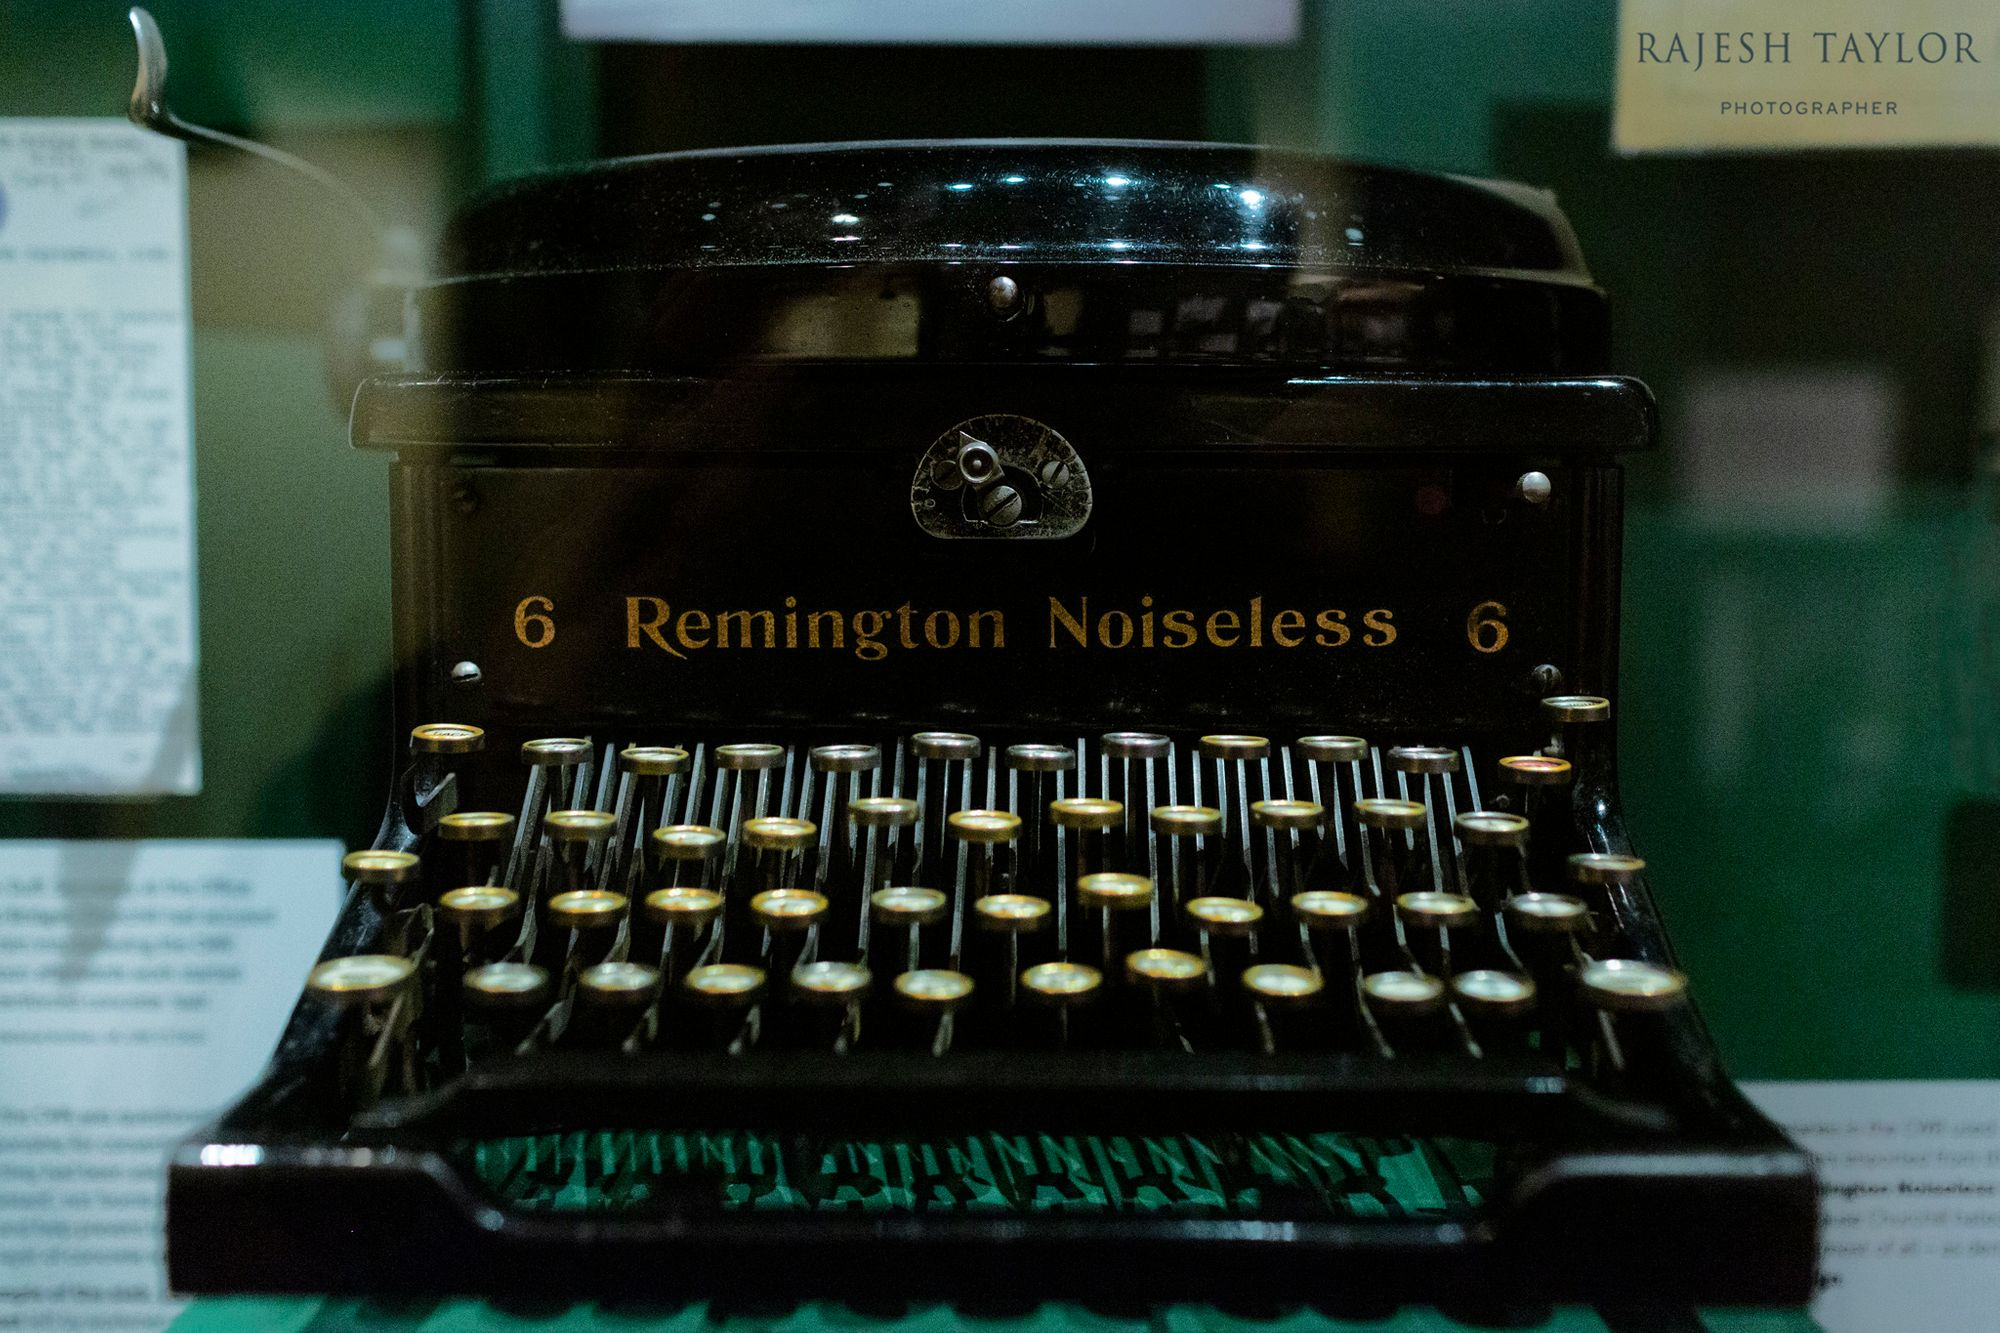 Remington Noiseless Model 6 Typewriter © Rajesh Taylor